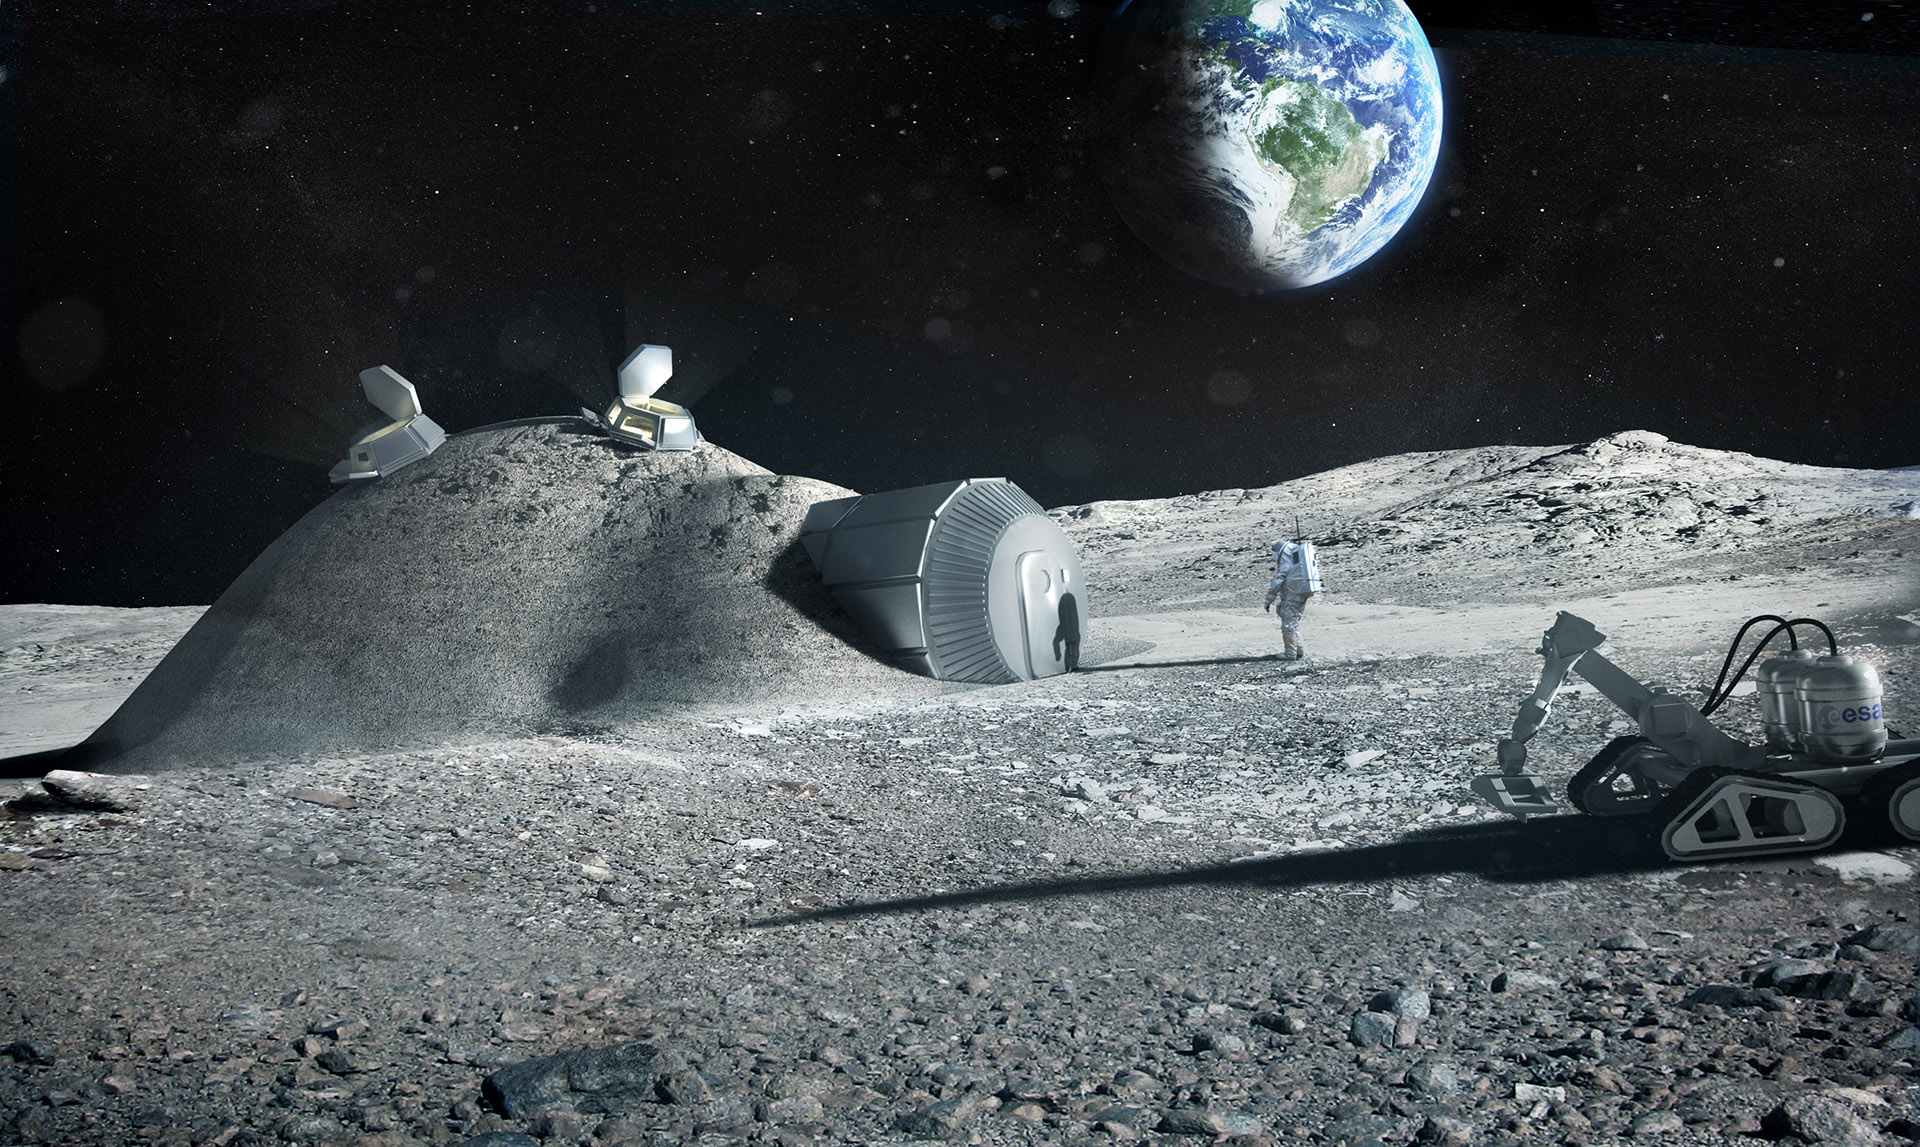 PR33 Water on the Moon – Filtering lunar ice cores to extract water